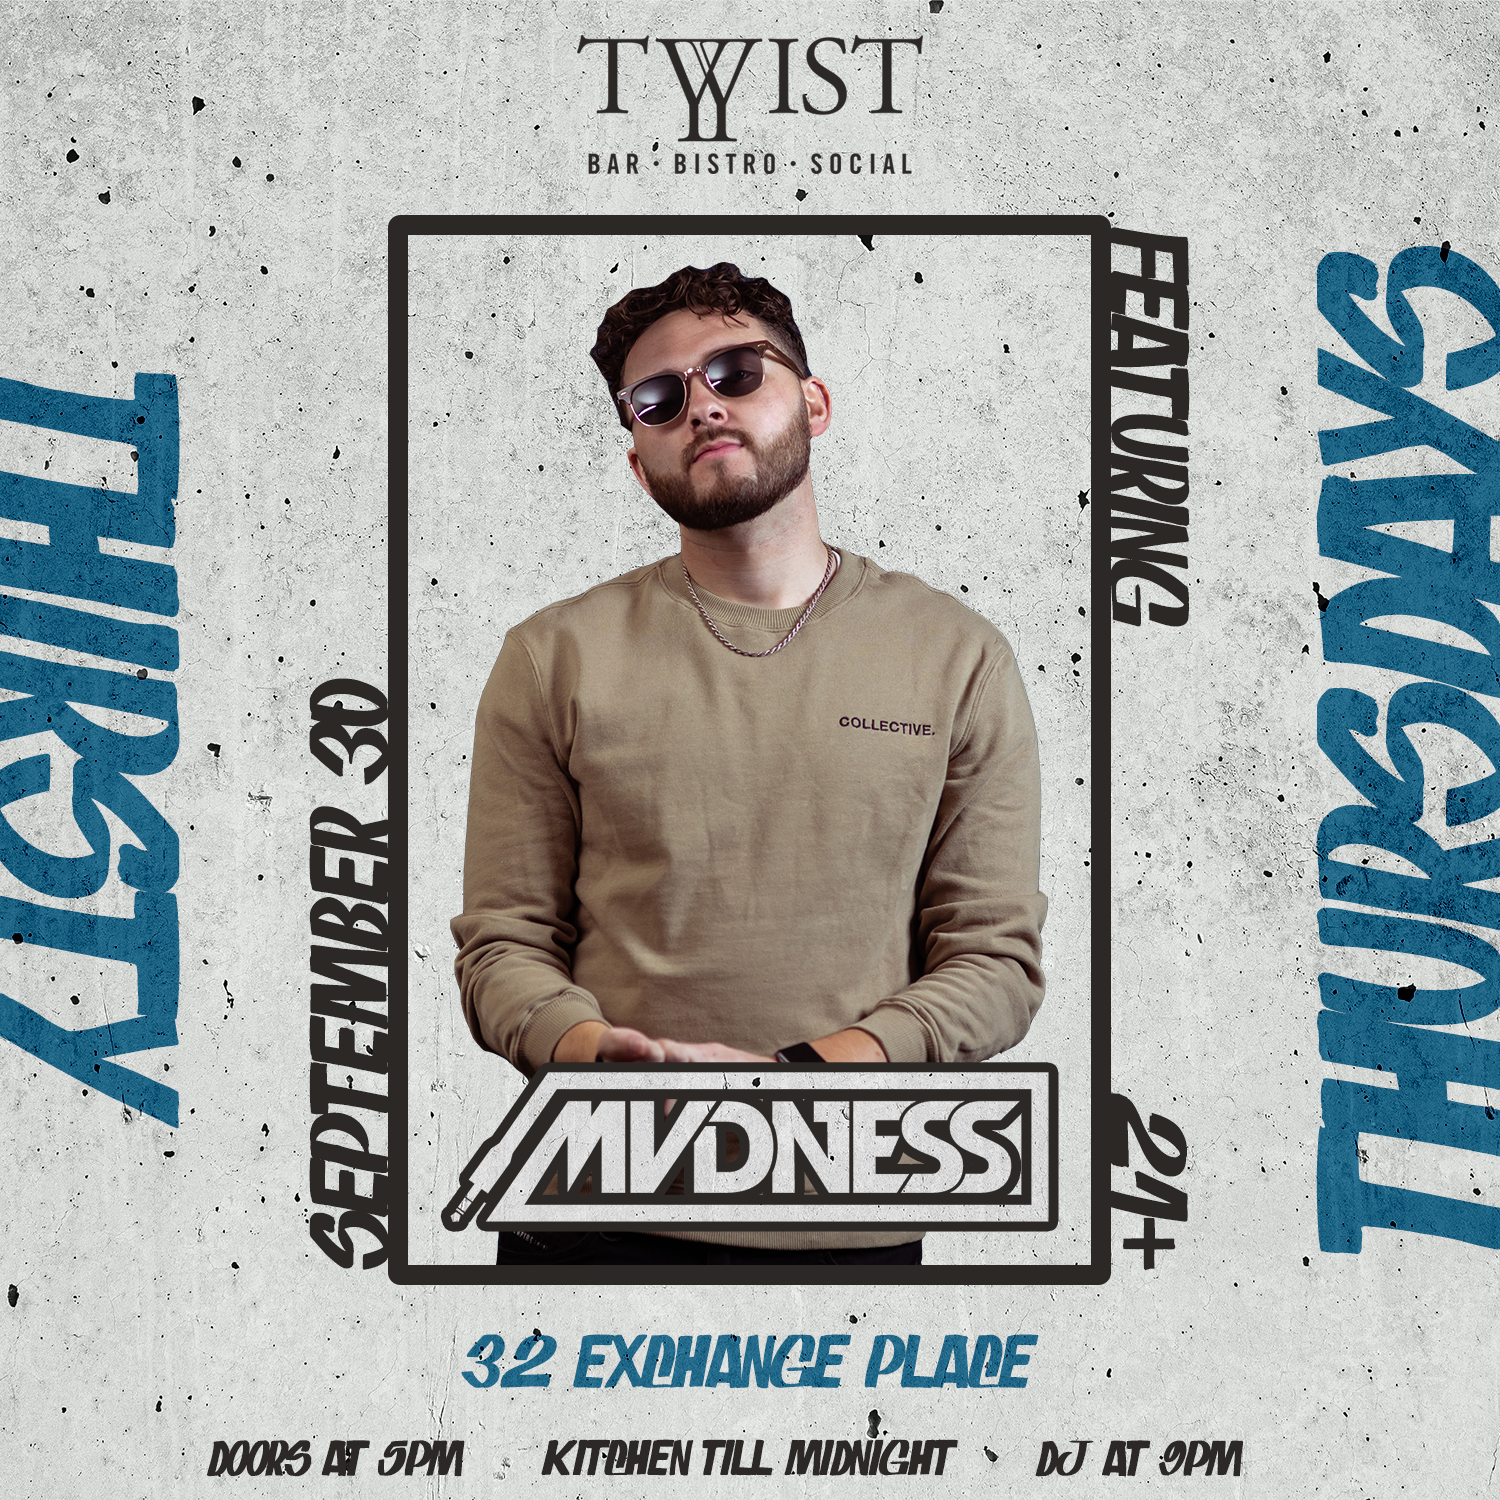 Event flyer for weekly Thusrday night held at Twist Bar & Bistro every Thursday on 32 Exchance Place in Downtown Salt Lake City featuring live DJs, sports, and drink and food spcecials.